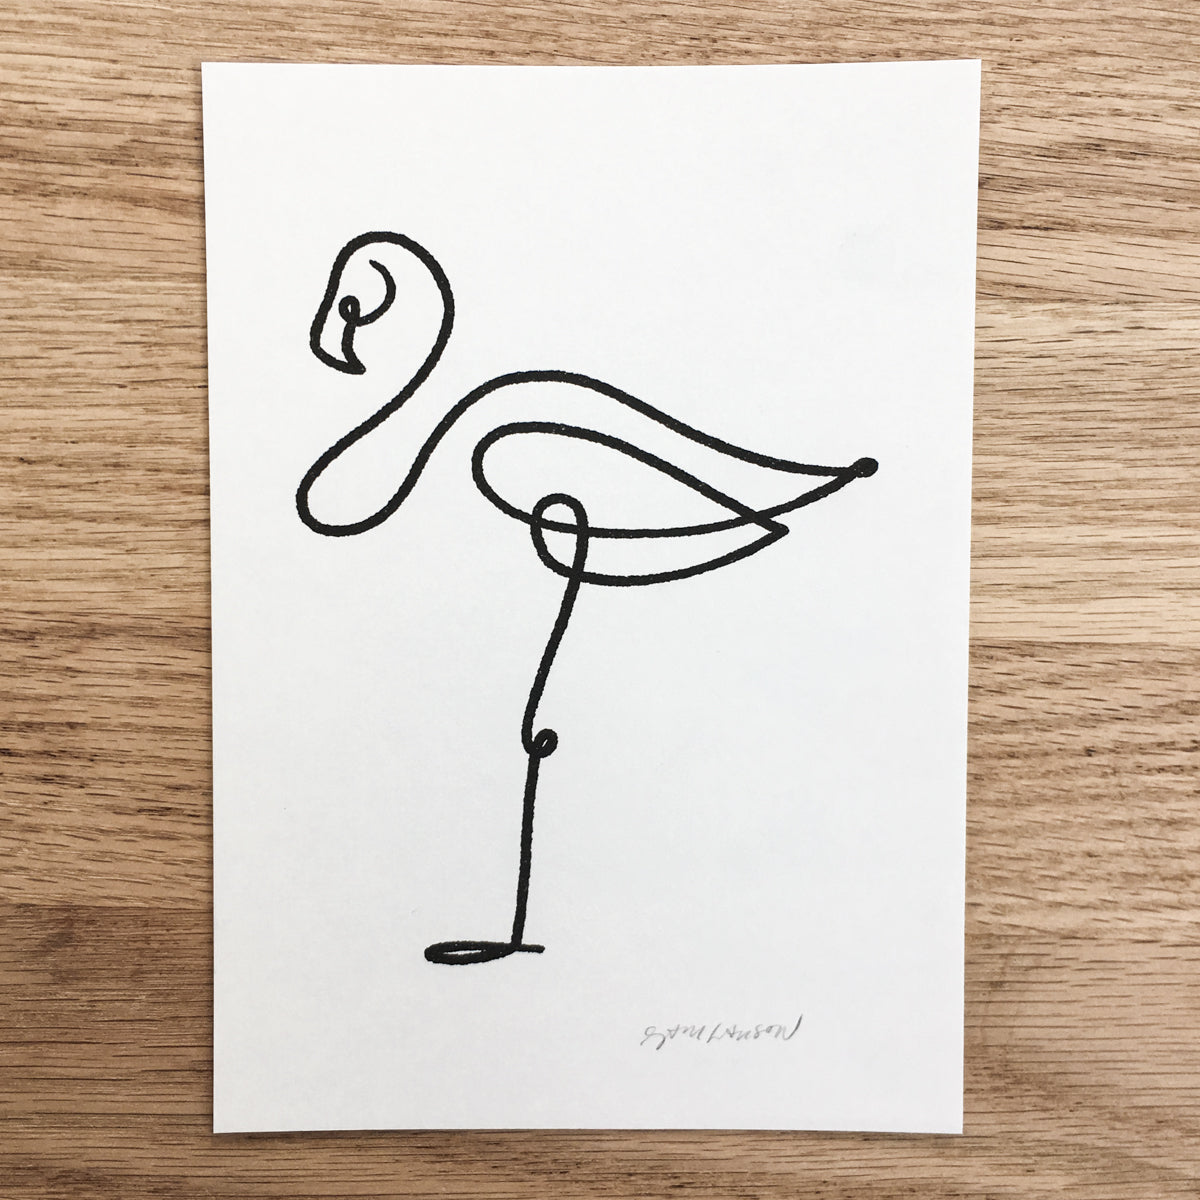 Abstract Flamingo - Signed Print #116